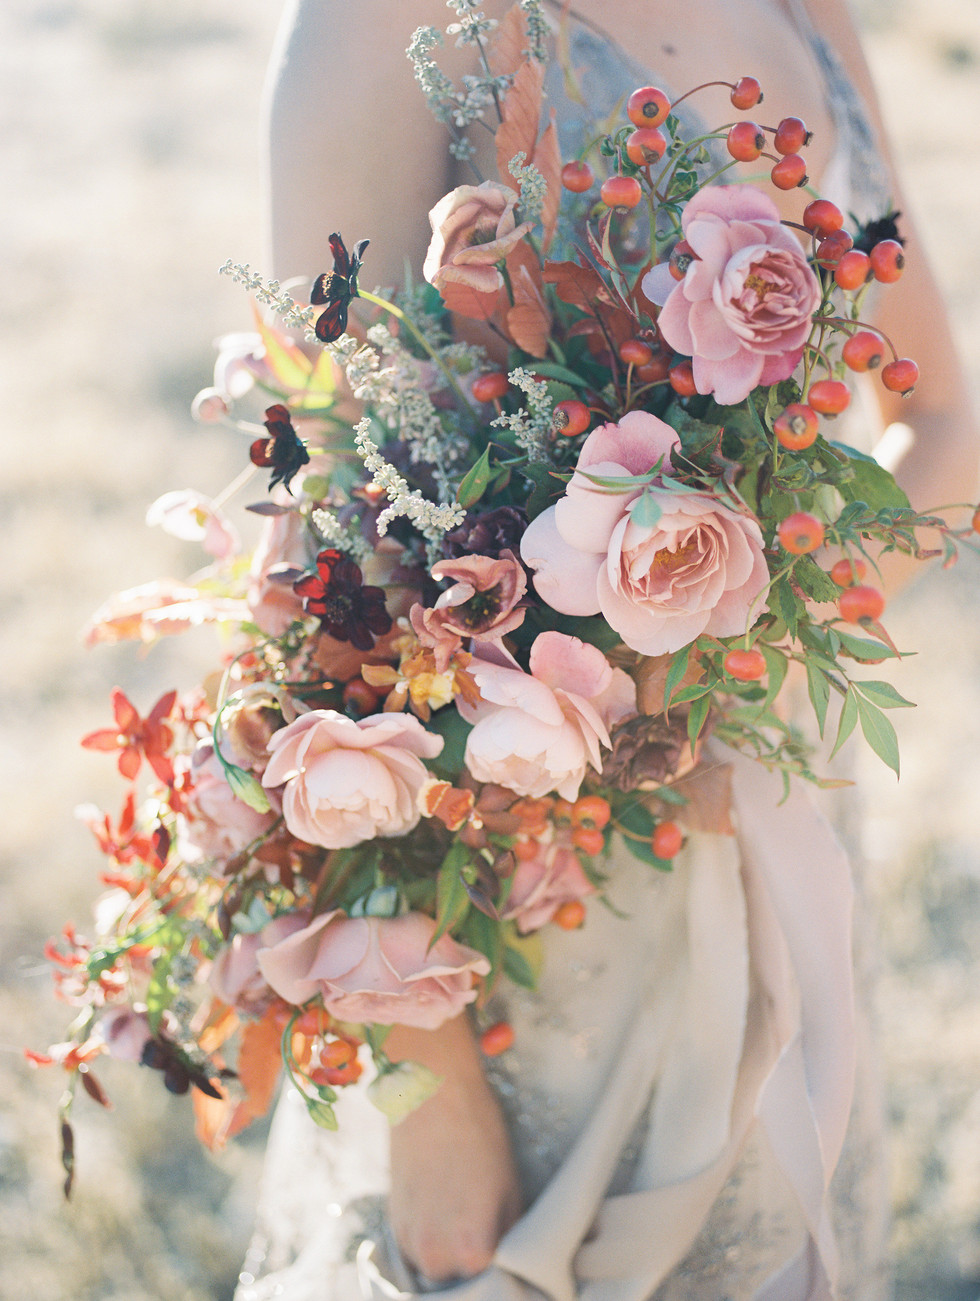 Autumnal bridal bouquet with Distant Drum roses, Koko Loko roses, orchids, lisianthus, french lavender and rose hips. Photo: Shannon Elizabeth